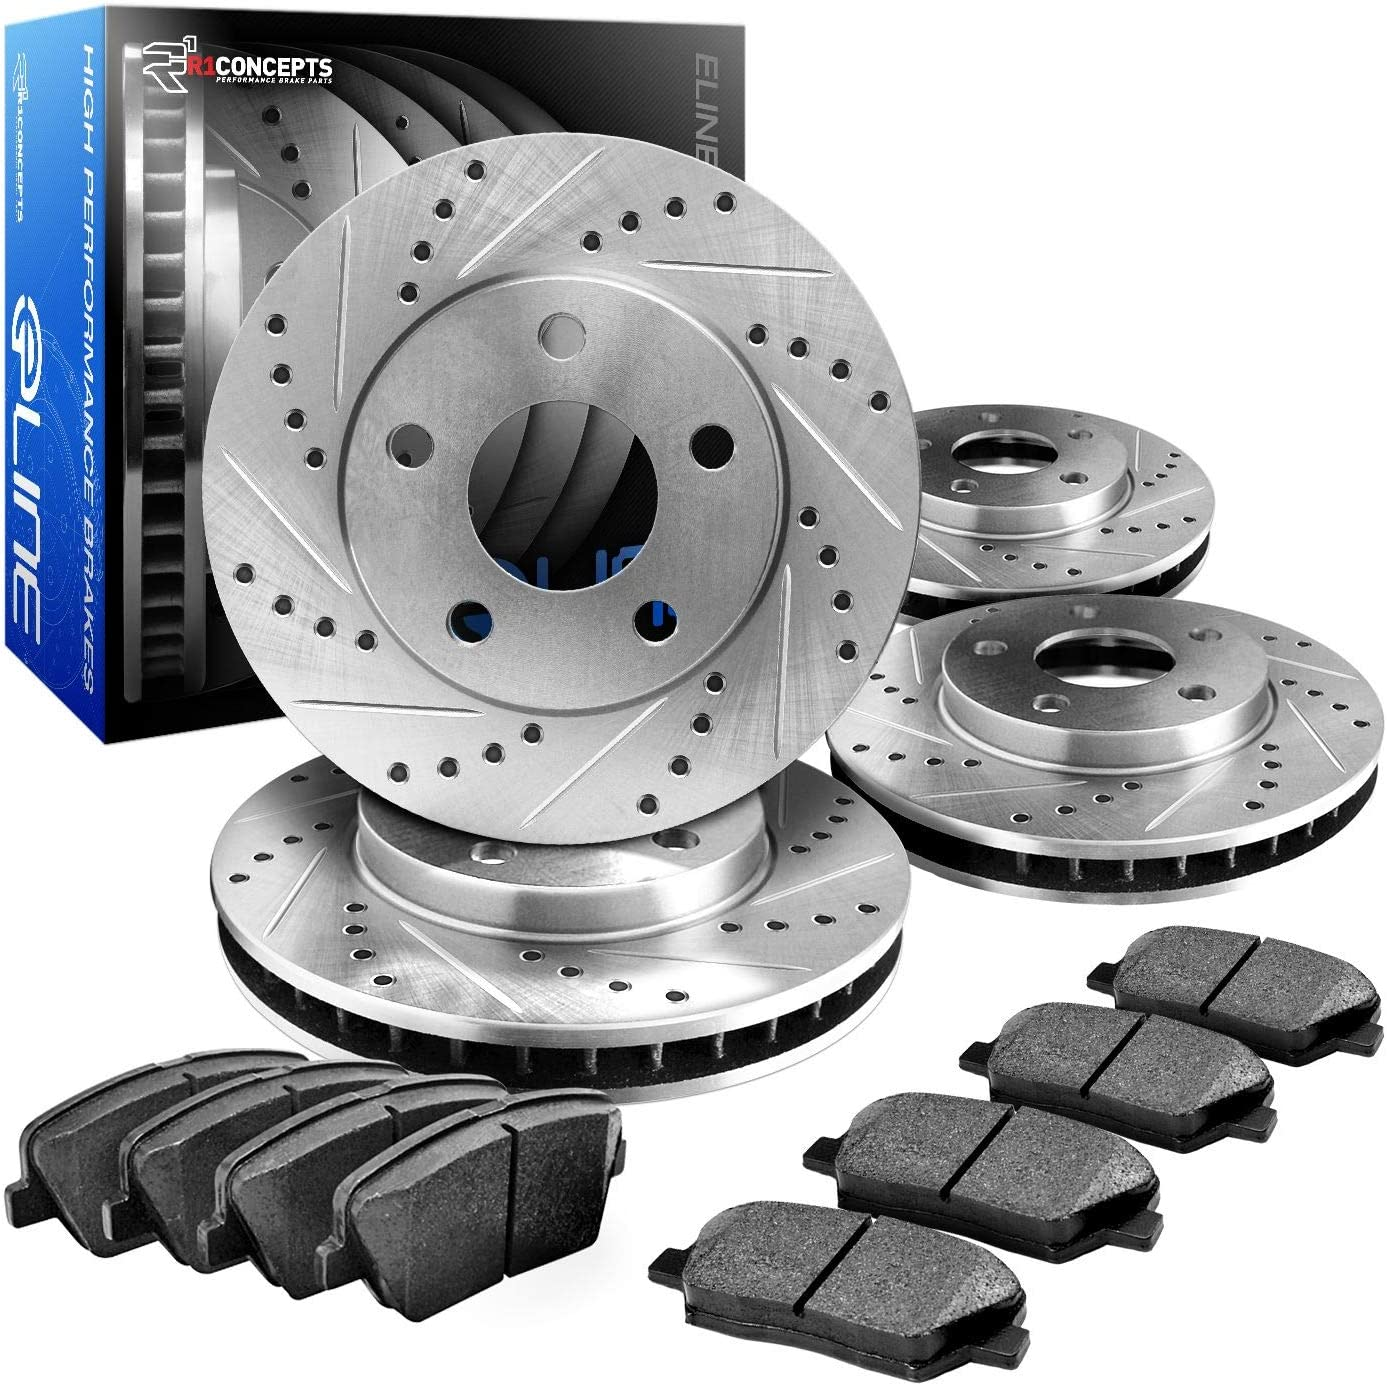 Front and Rear R1 Concepts CEDS10159 Eline Series Cross-Drilled Slotted Rotors And Ceramic Pads Kit